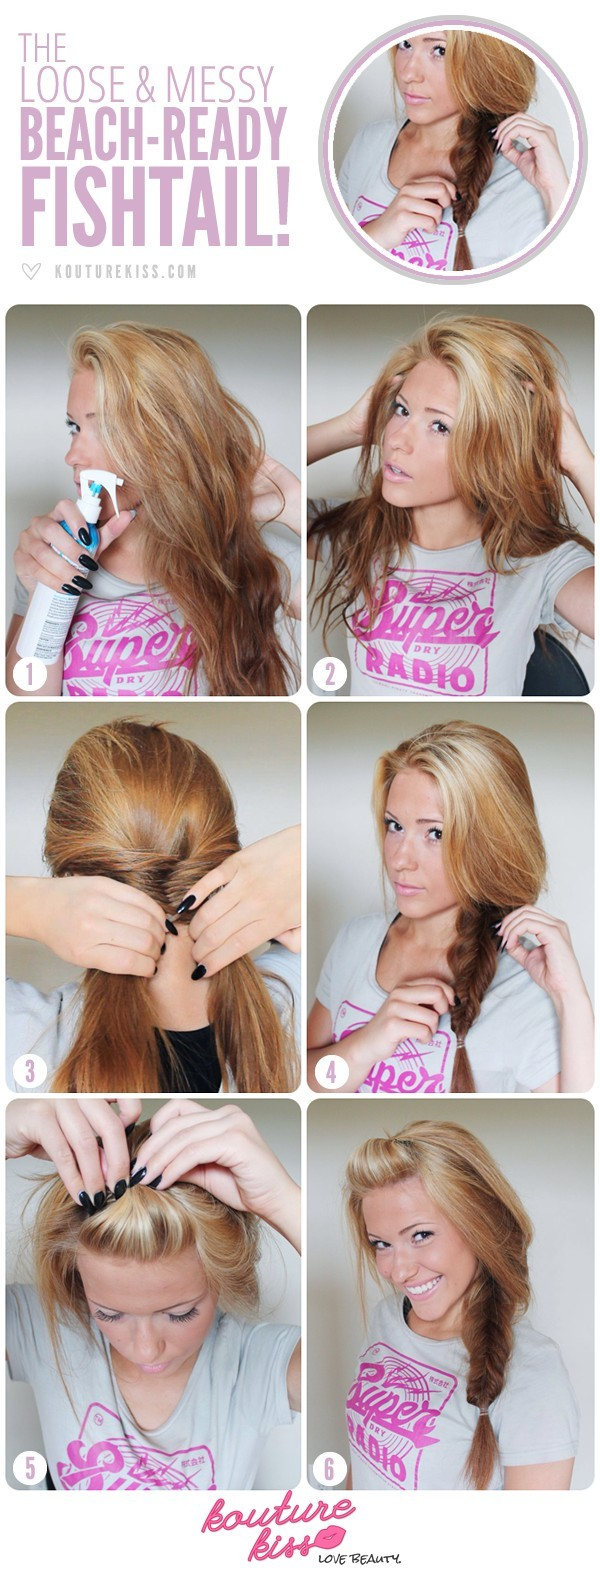 Side and Messy Fishtail Braid Tutorial: Strandfrisuren